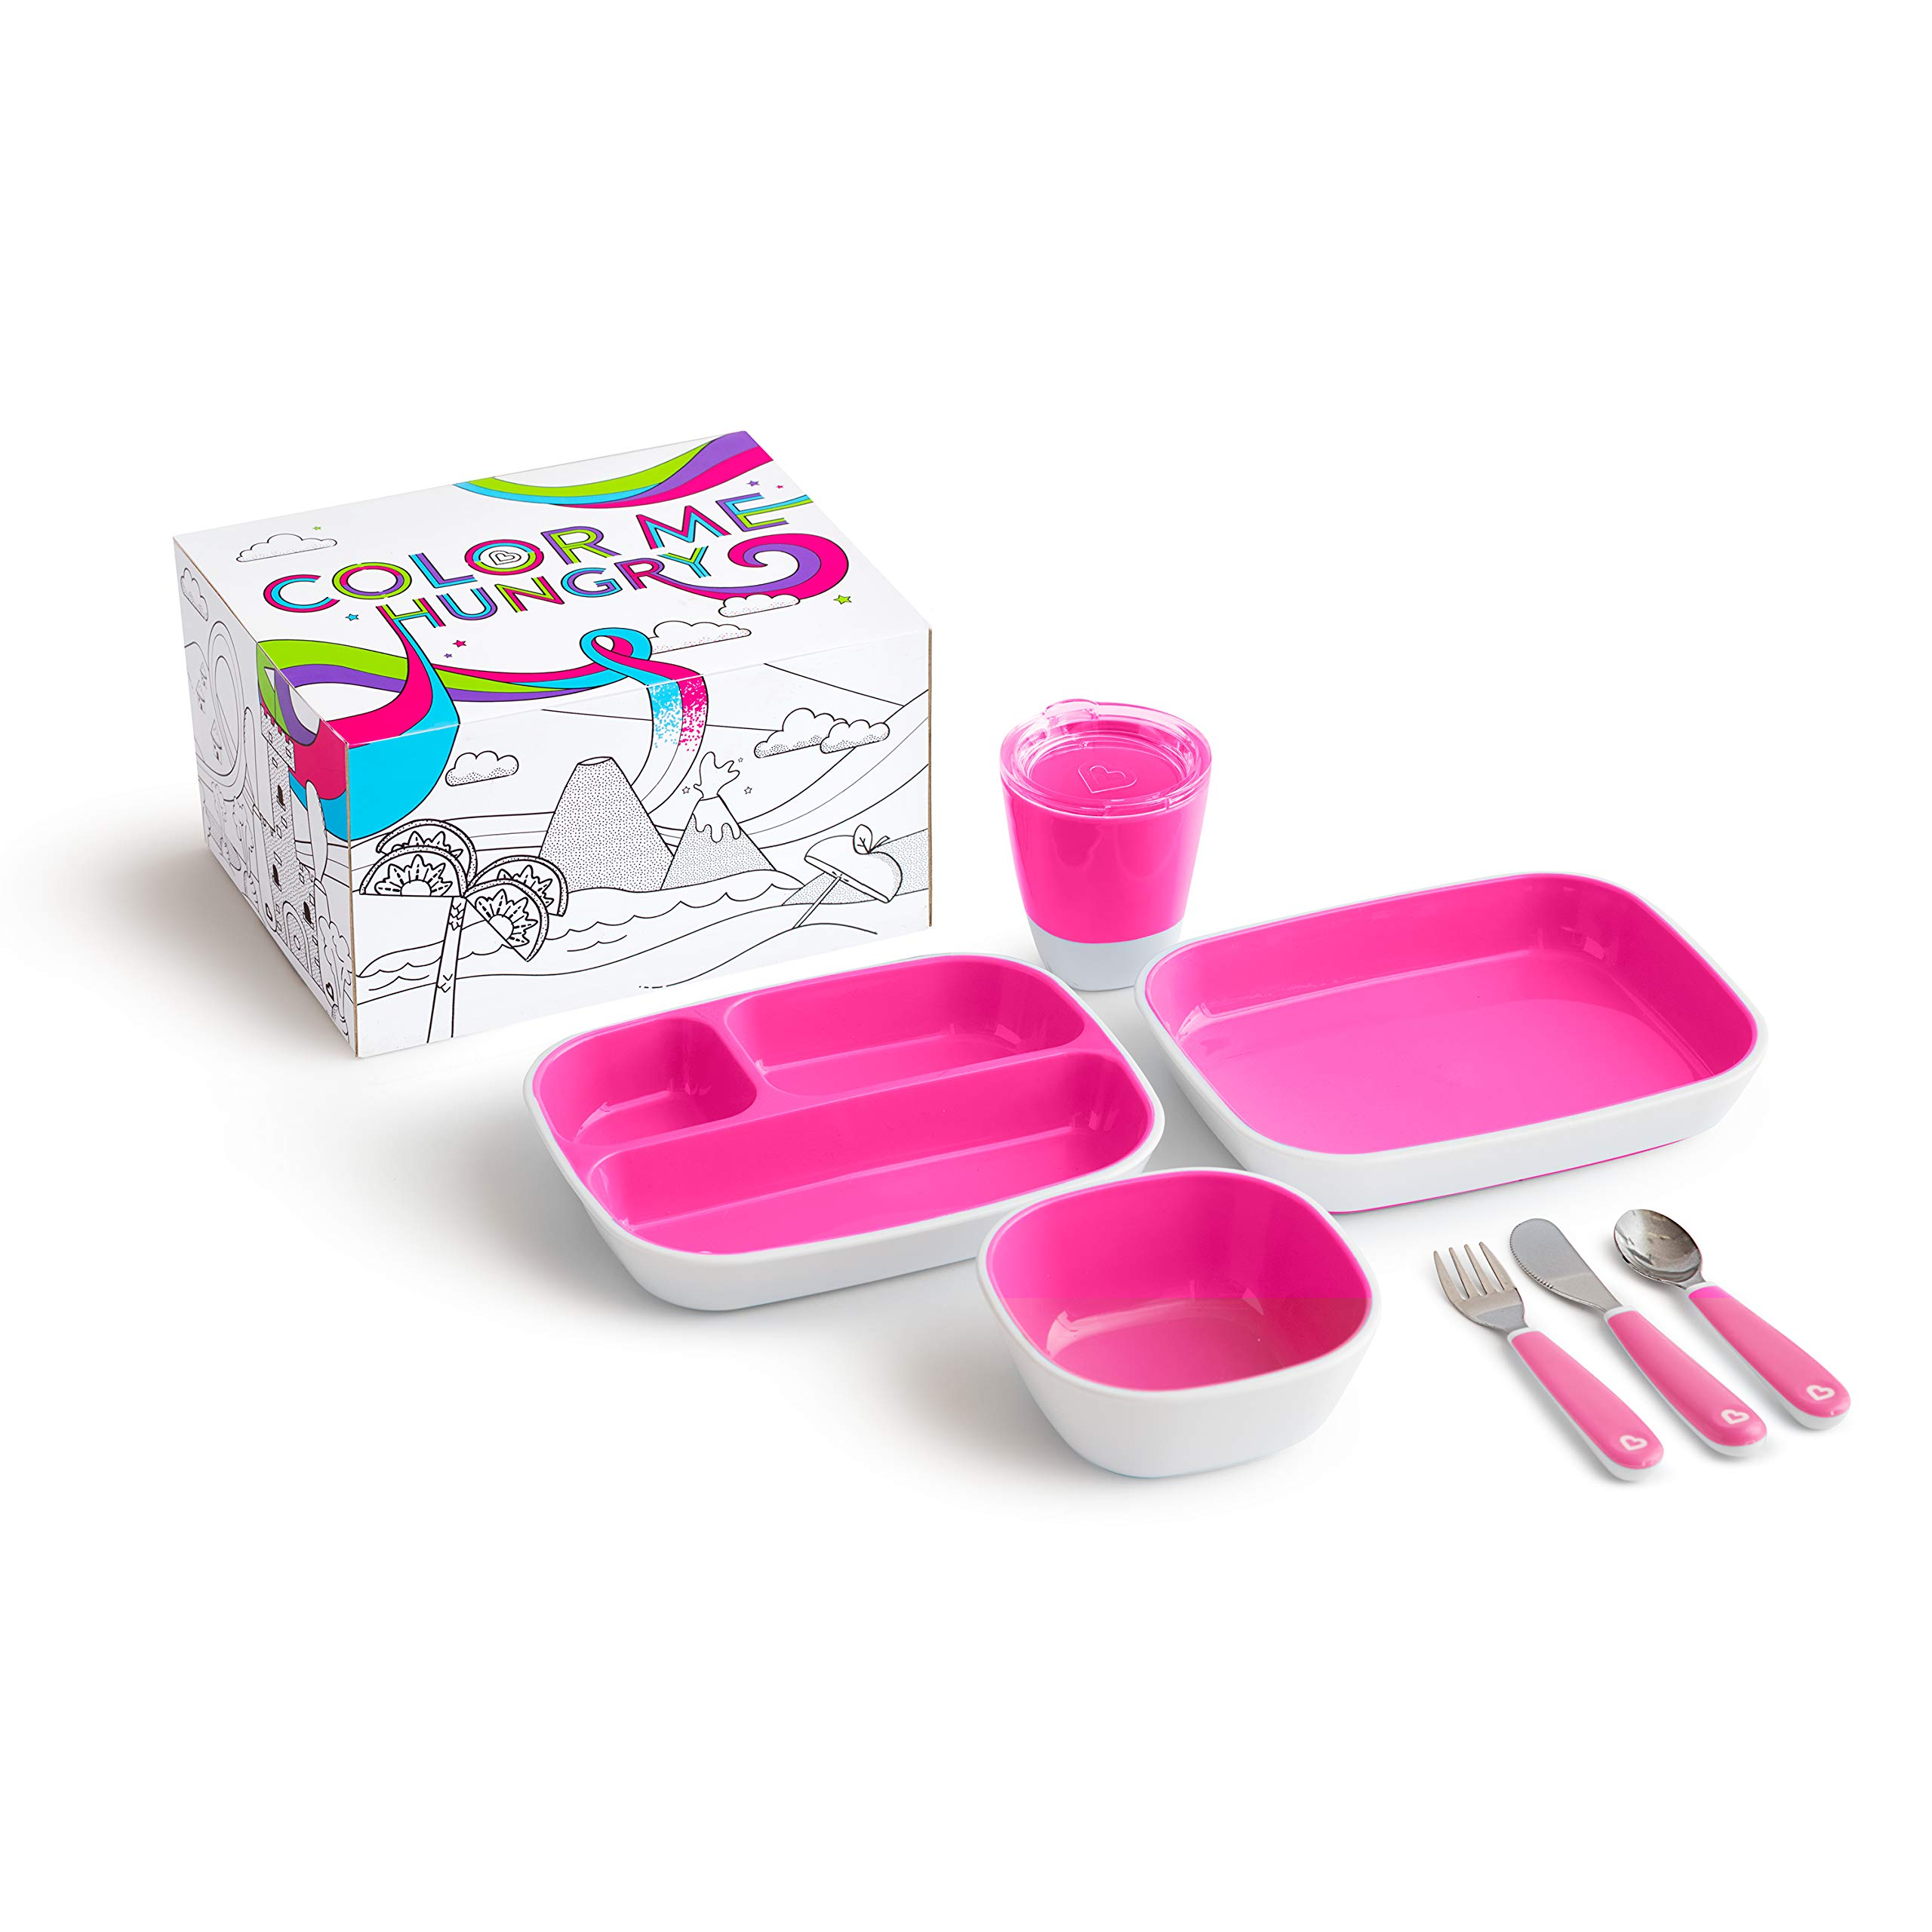 Munchkin Color Me Hungry Splash 7pc Toddler Dining Set - Plate, Bowl, Cup, and Utensils in a Gift Box, Pink by Munchkin